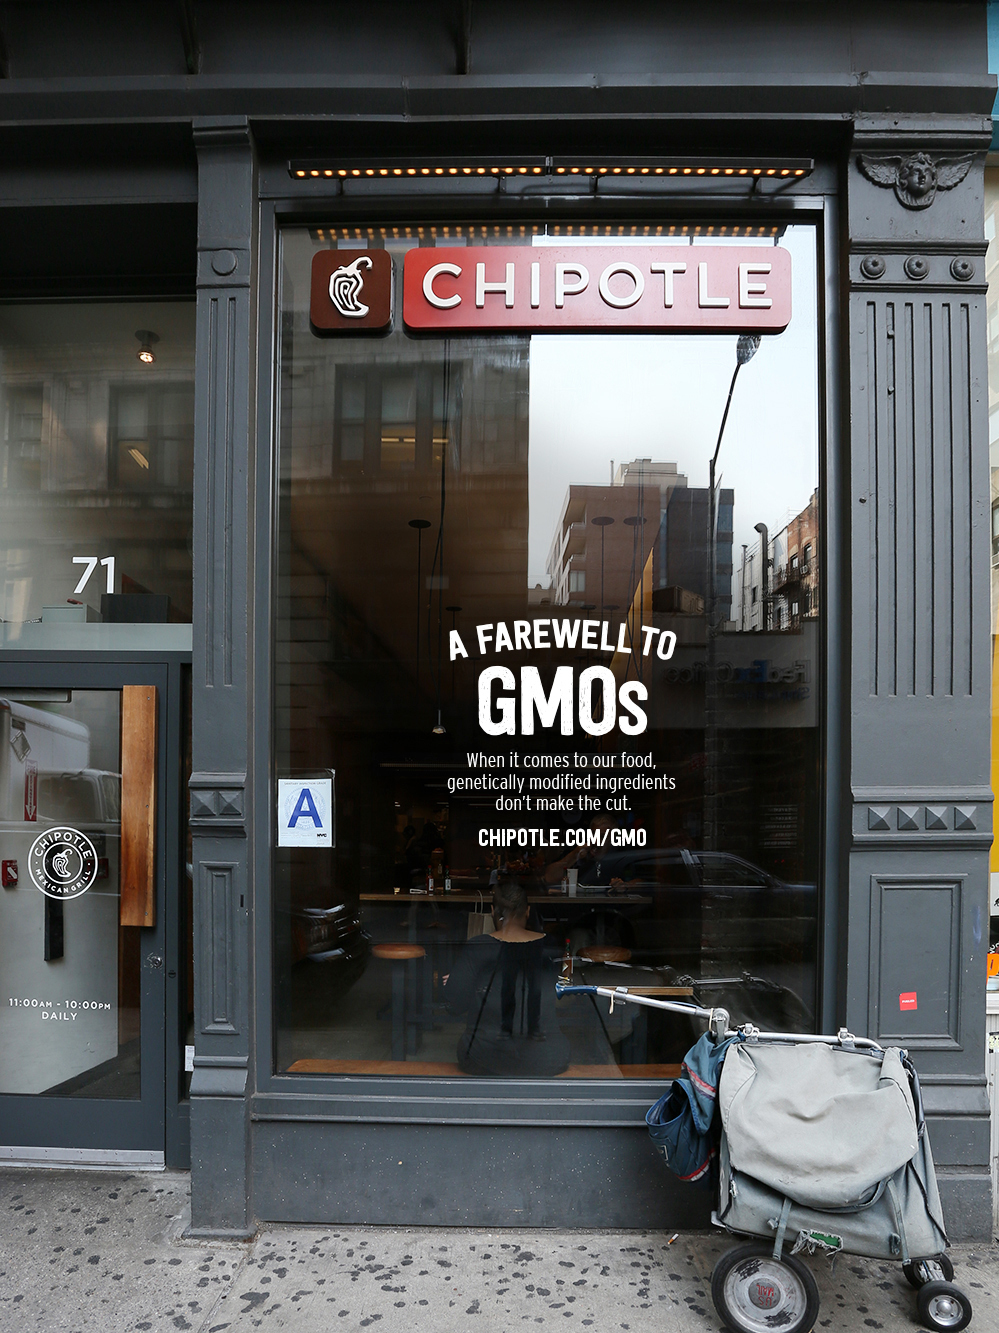 Chipotle Says Adios To GMOs, As Food Industry Strips Away Ingredients